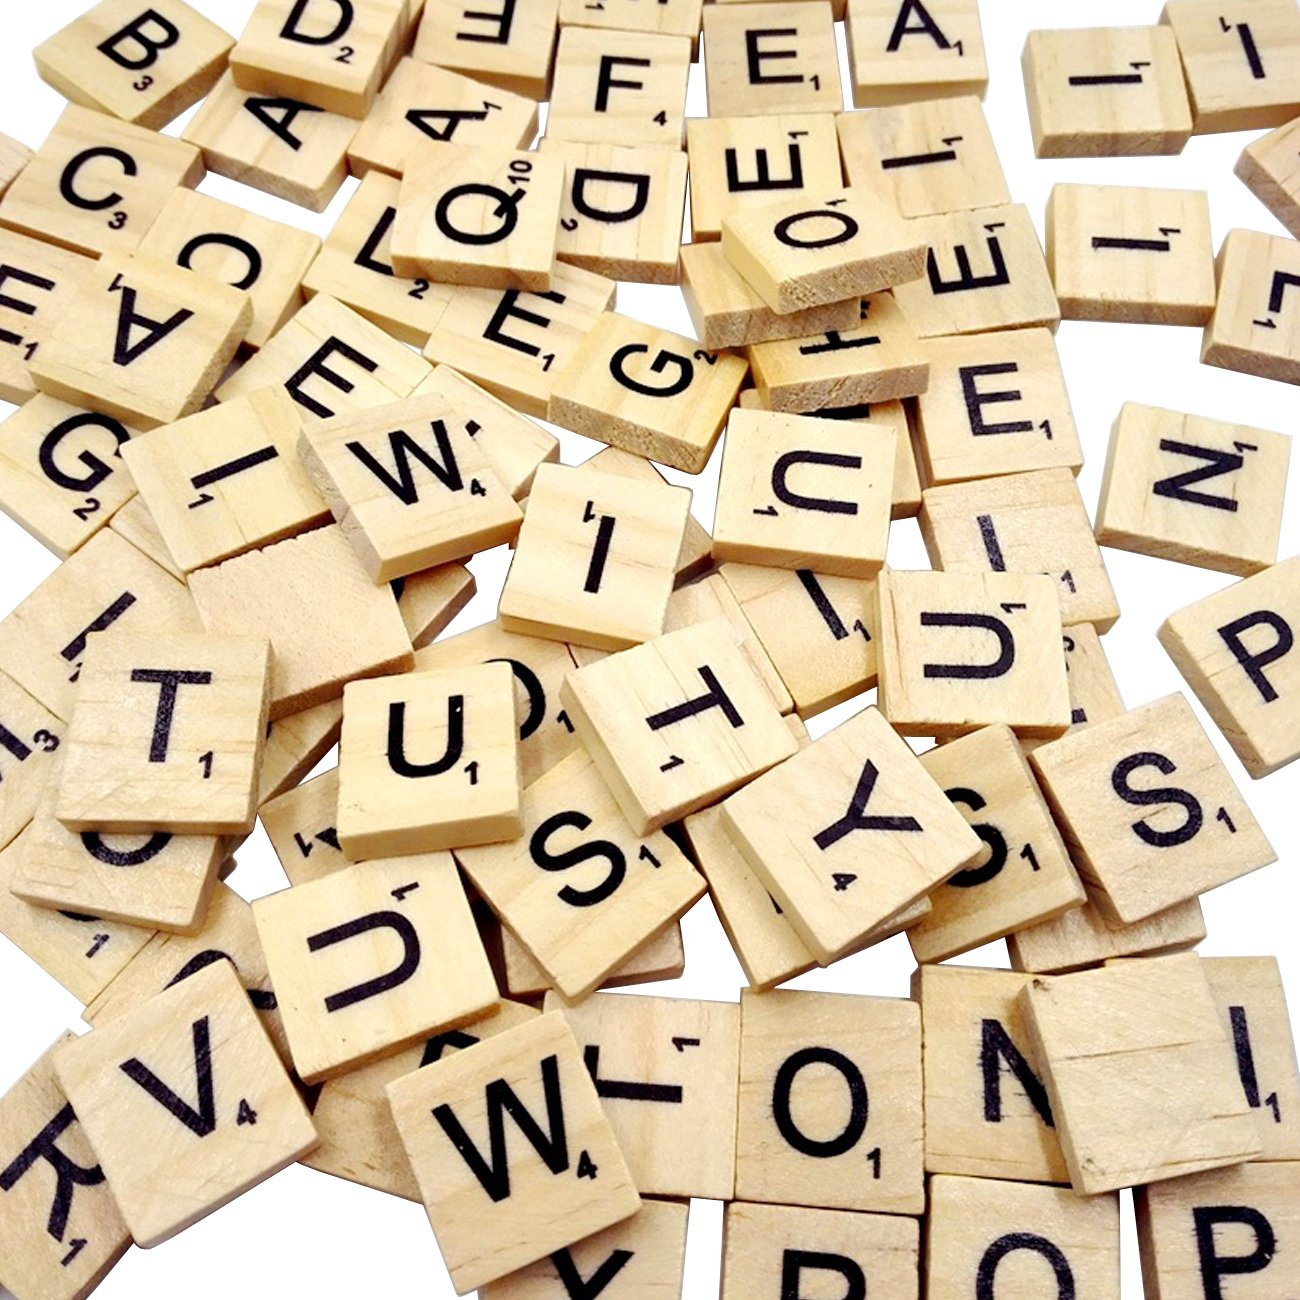 Sunnyglade 500PCS Wood Letter Tiles/ Wooden Scrabble Tiles A-Z Capital Letters for Crafts, Pendants, Spelling by Sunnyglade